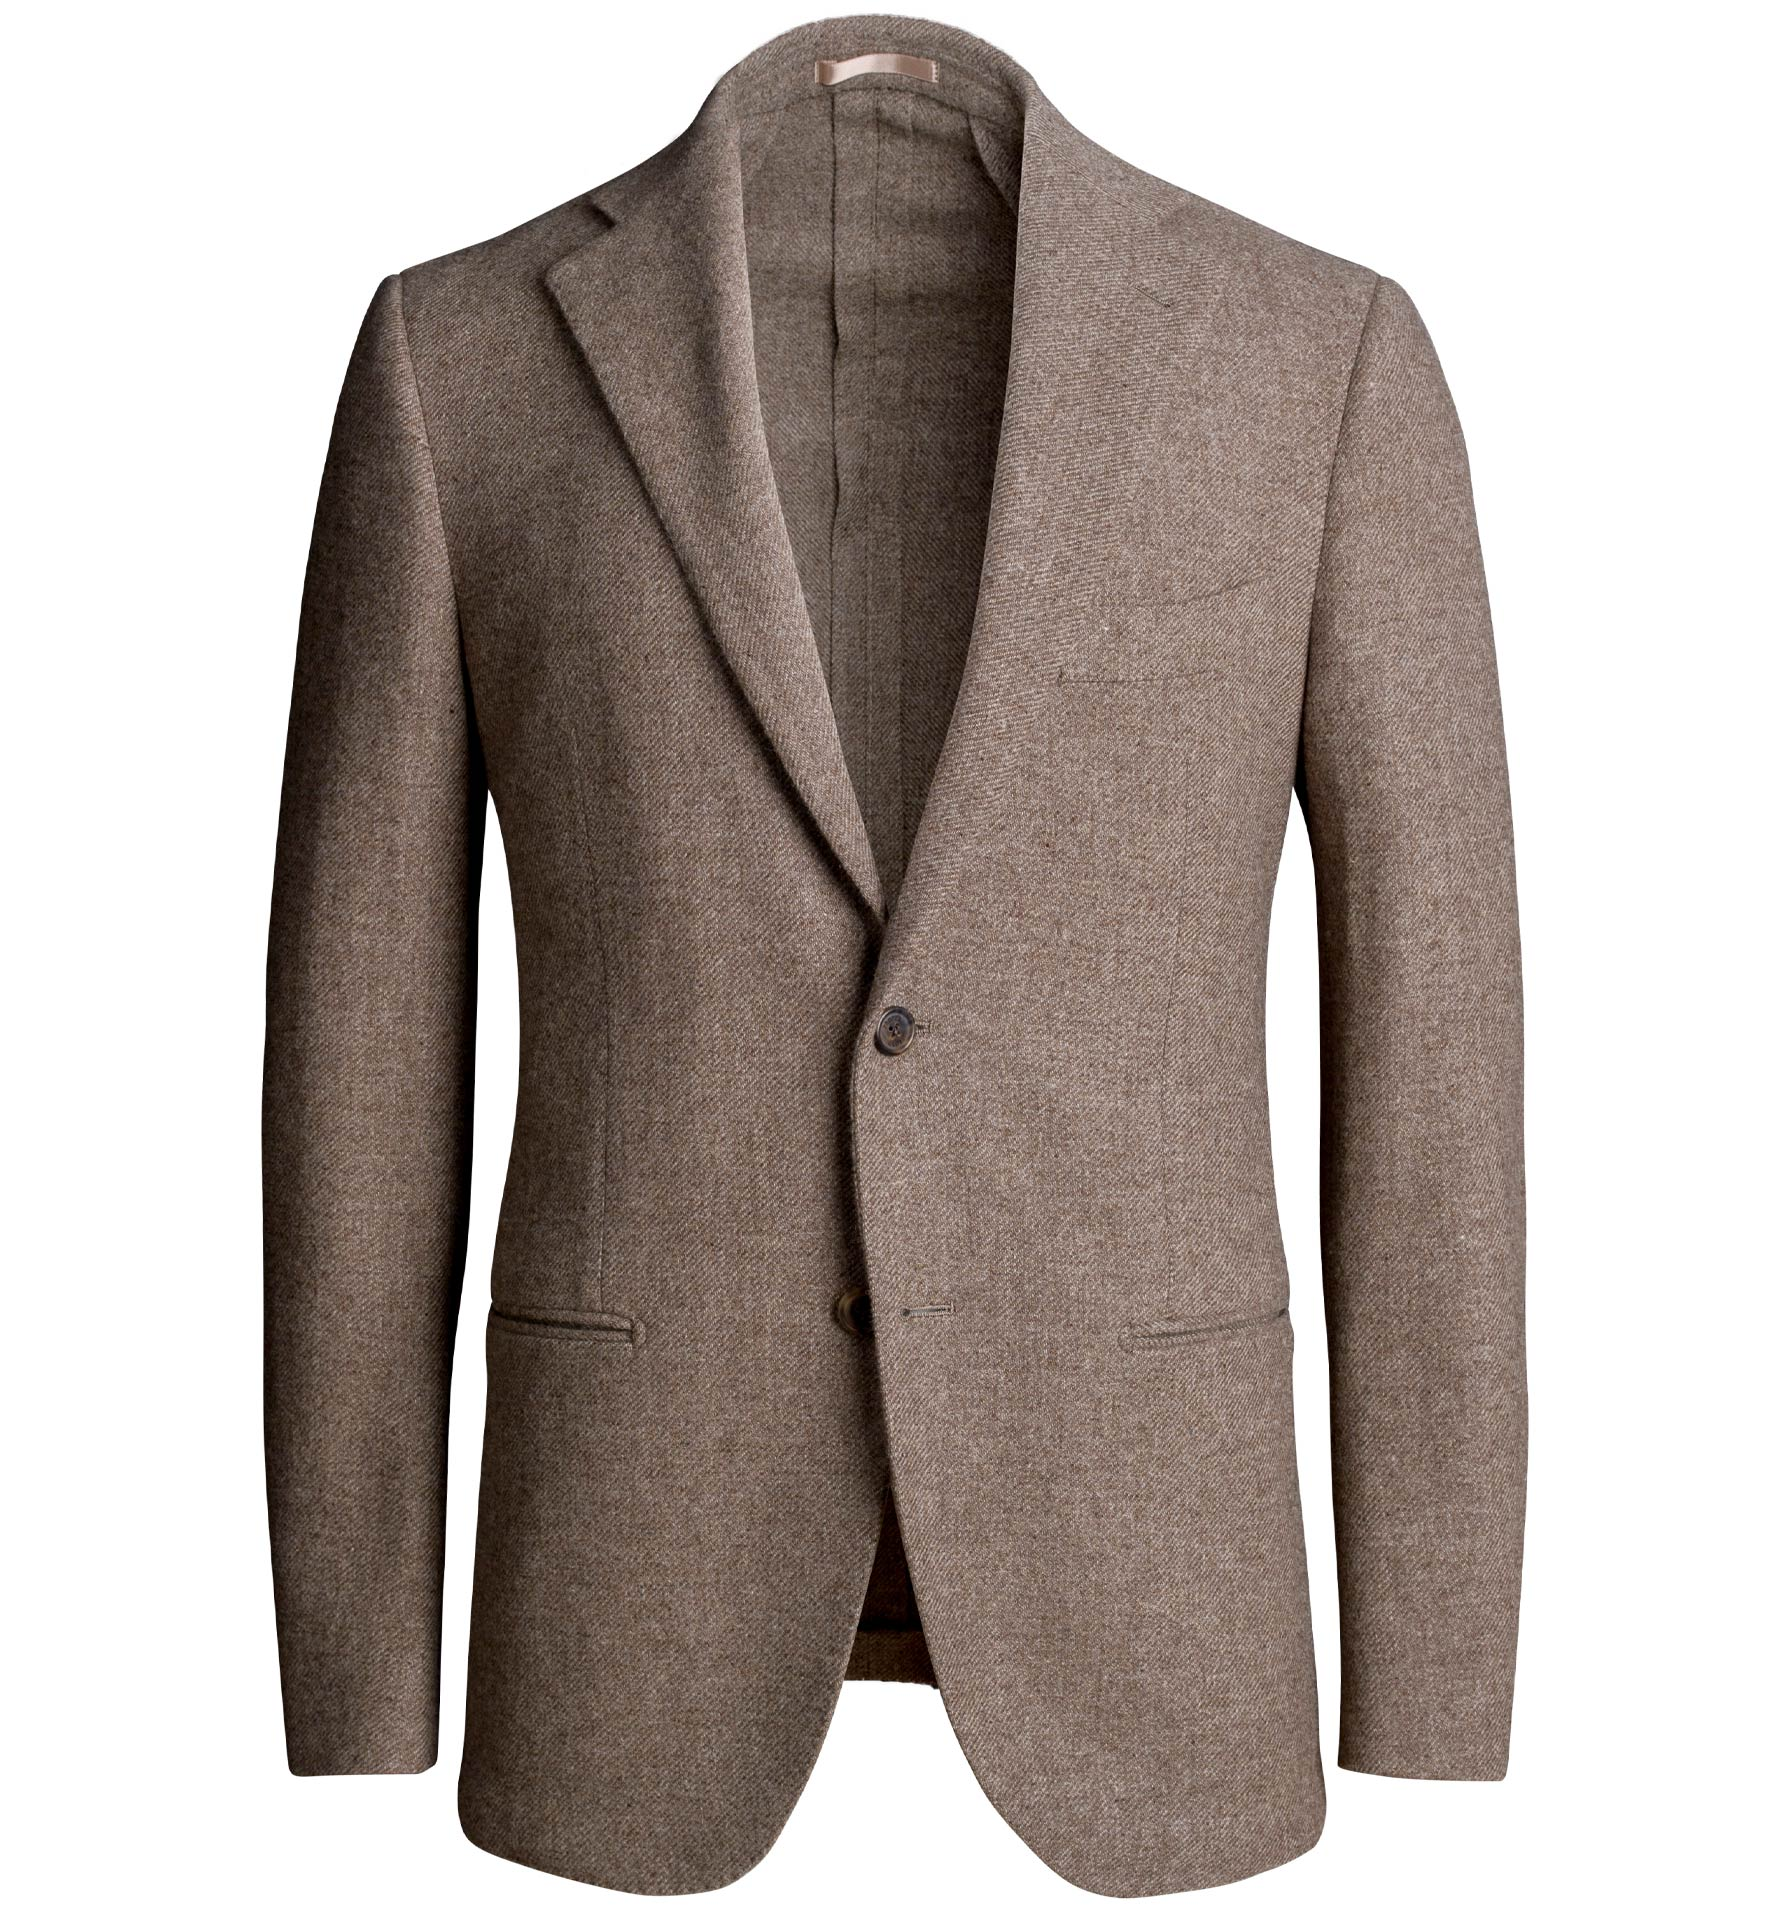 Zoom Image of Bedford Taupe Wool and Cashmere Jacket